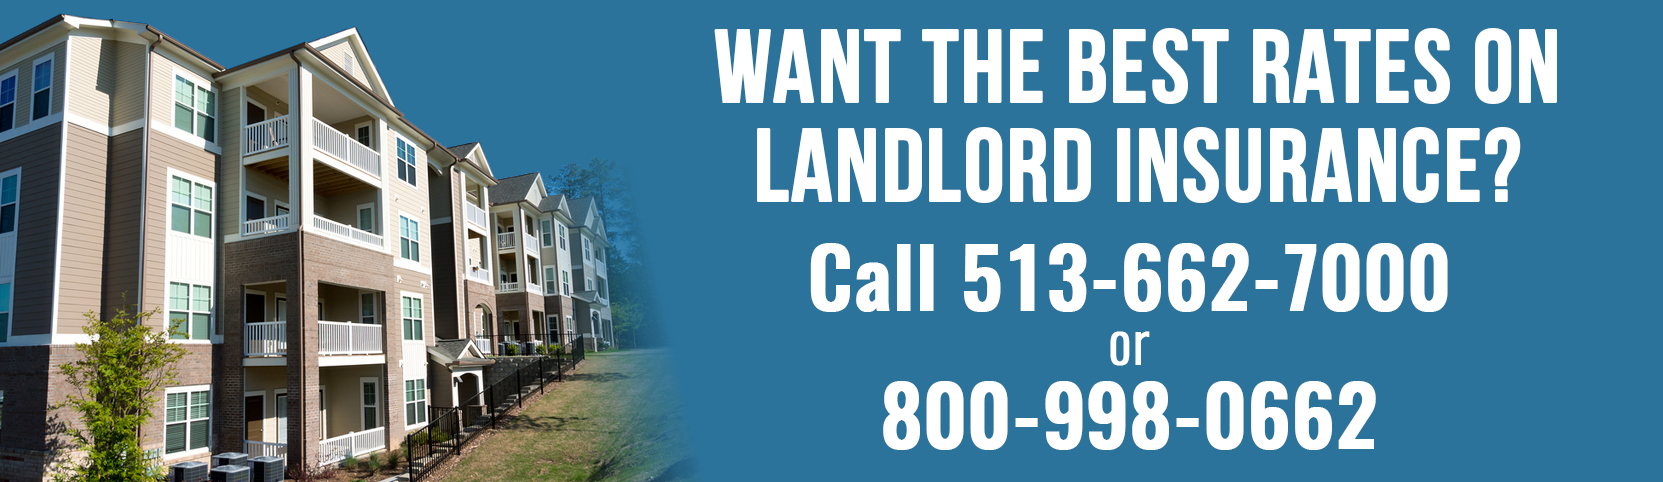 Columbus Landlord Insurance